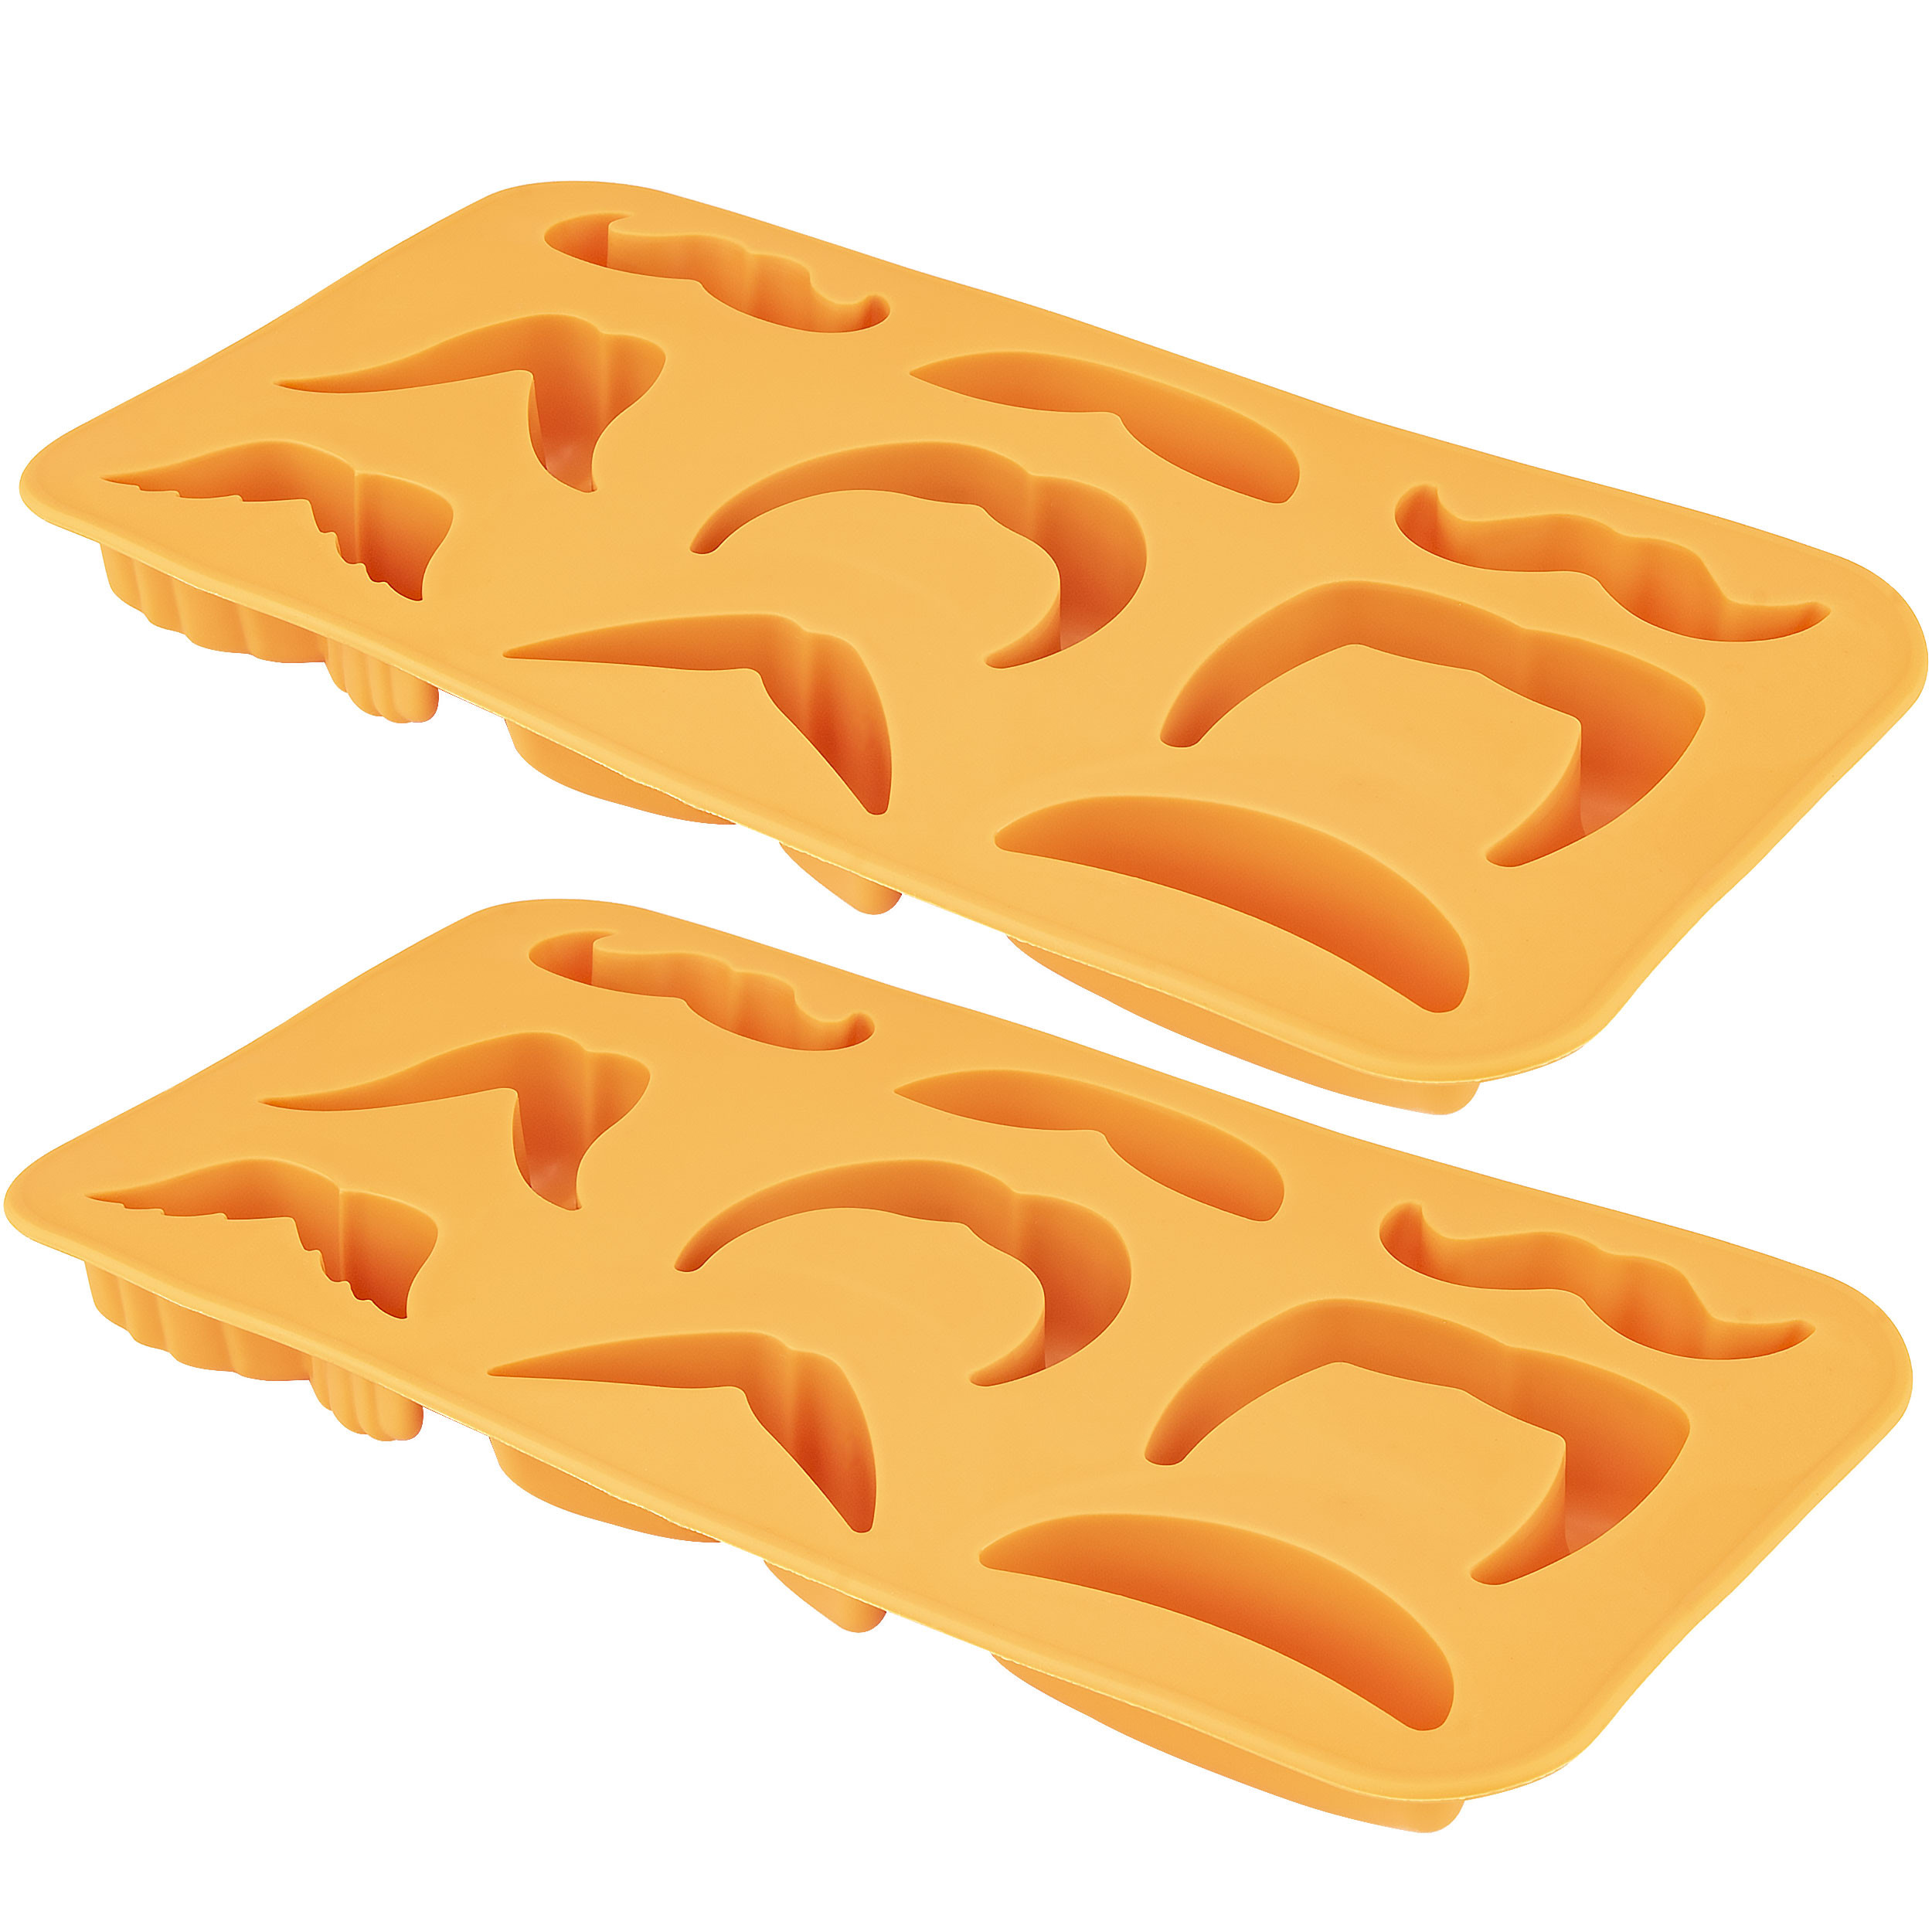 Moustache Variety Ice Cube Tray, 2 Pack